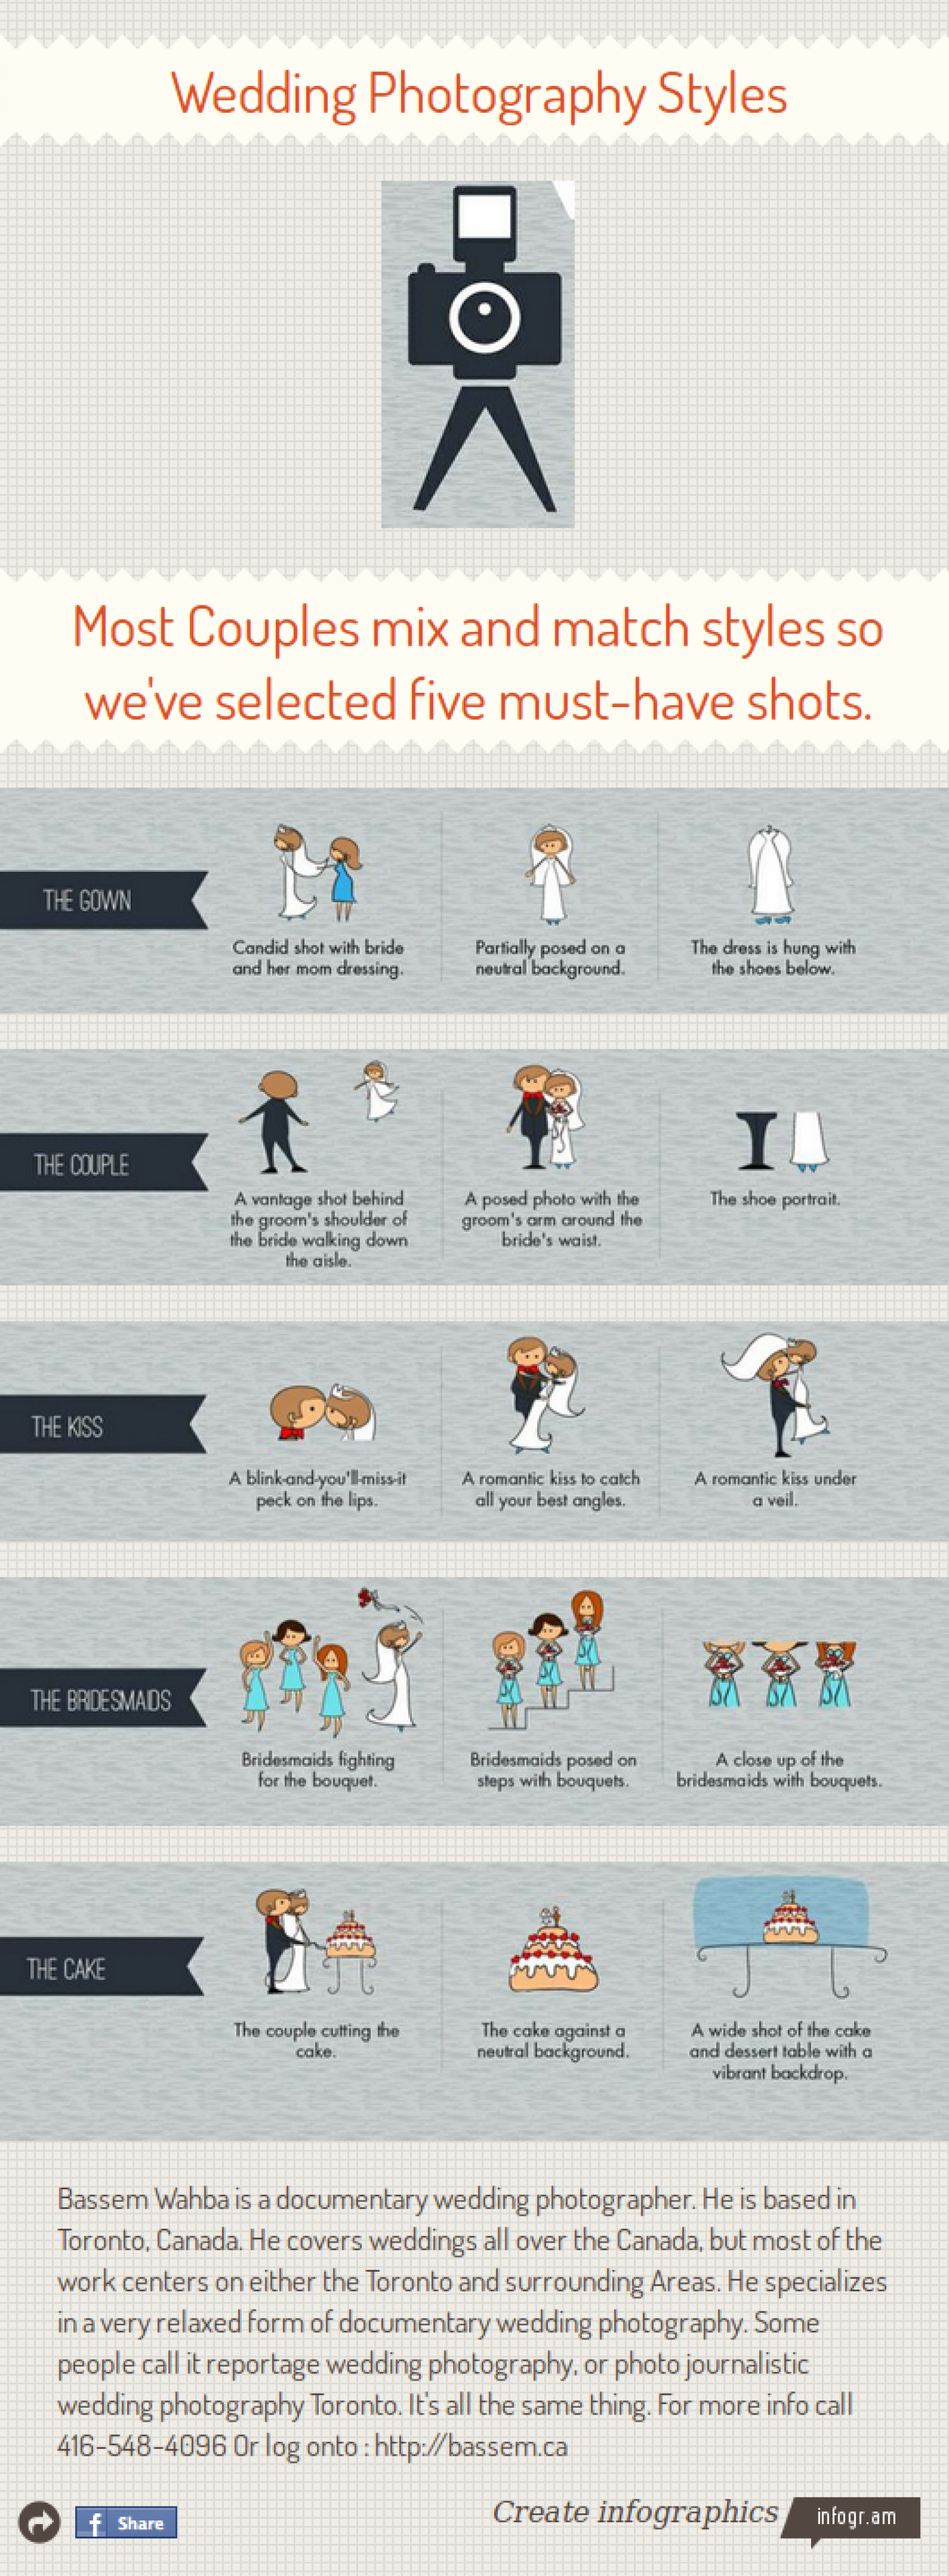 Wedding Photography Styles Infographic